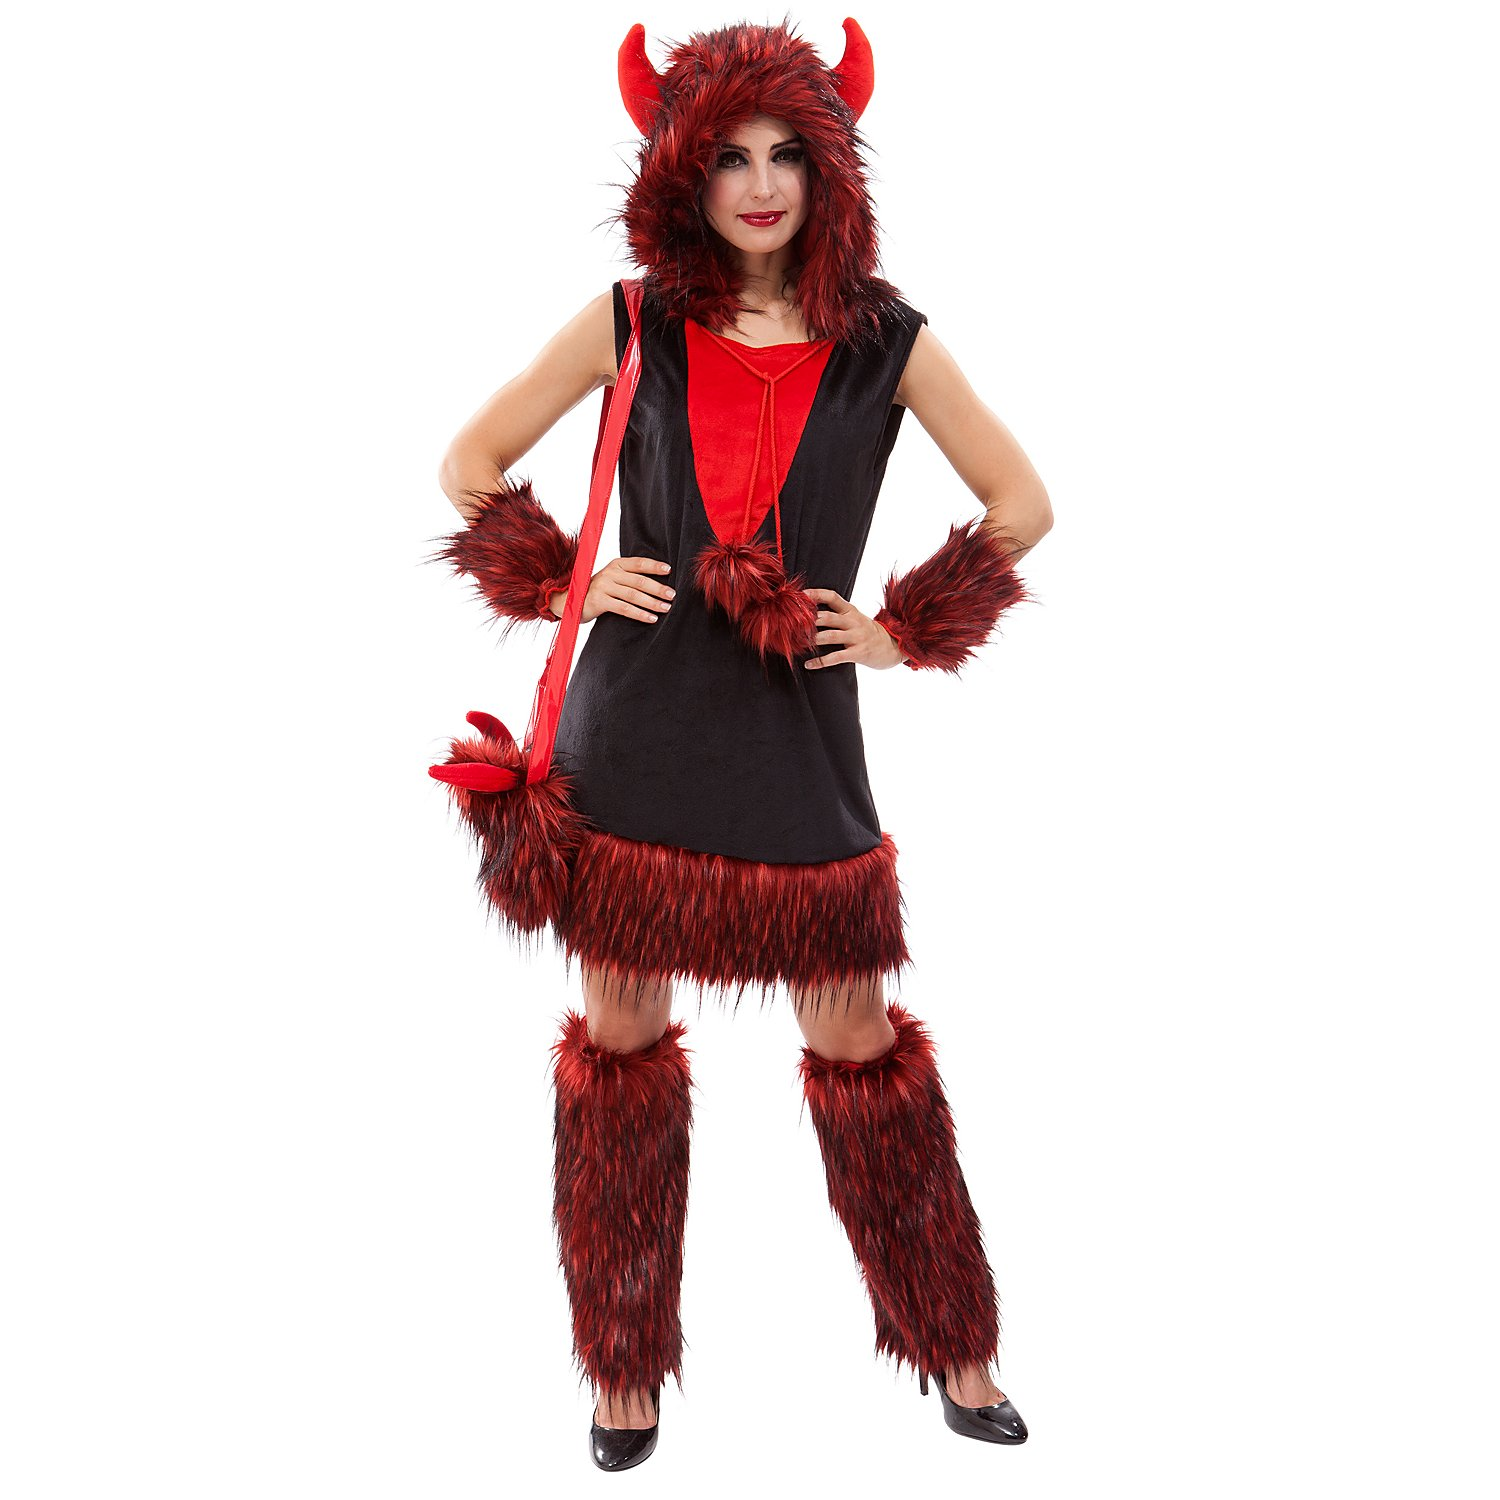 Teufel Kostum Fur Halloween Fasching Buttinette Karneval Shop